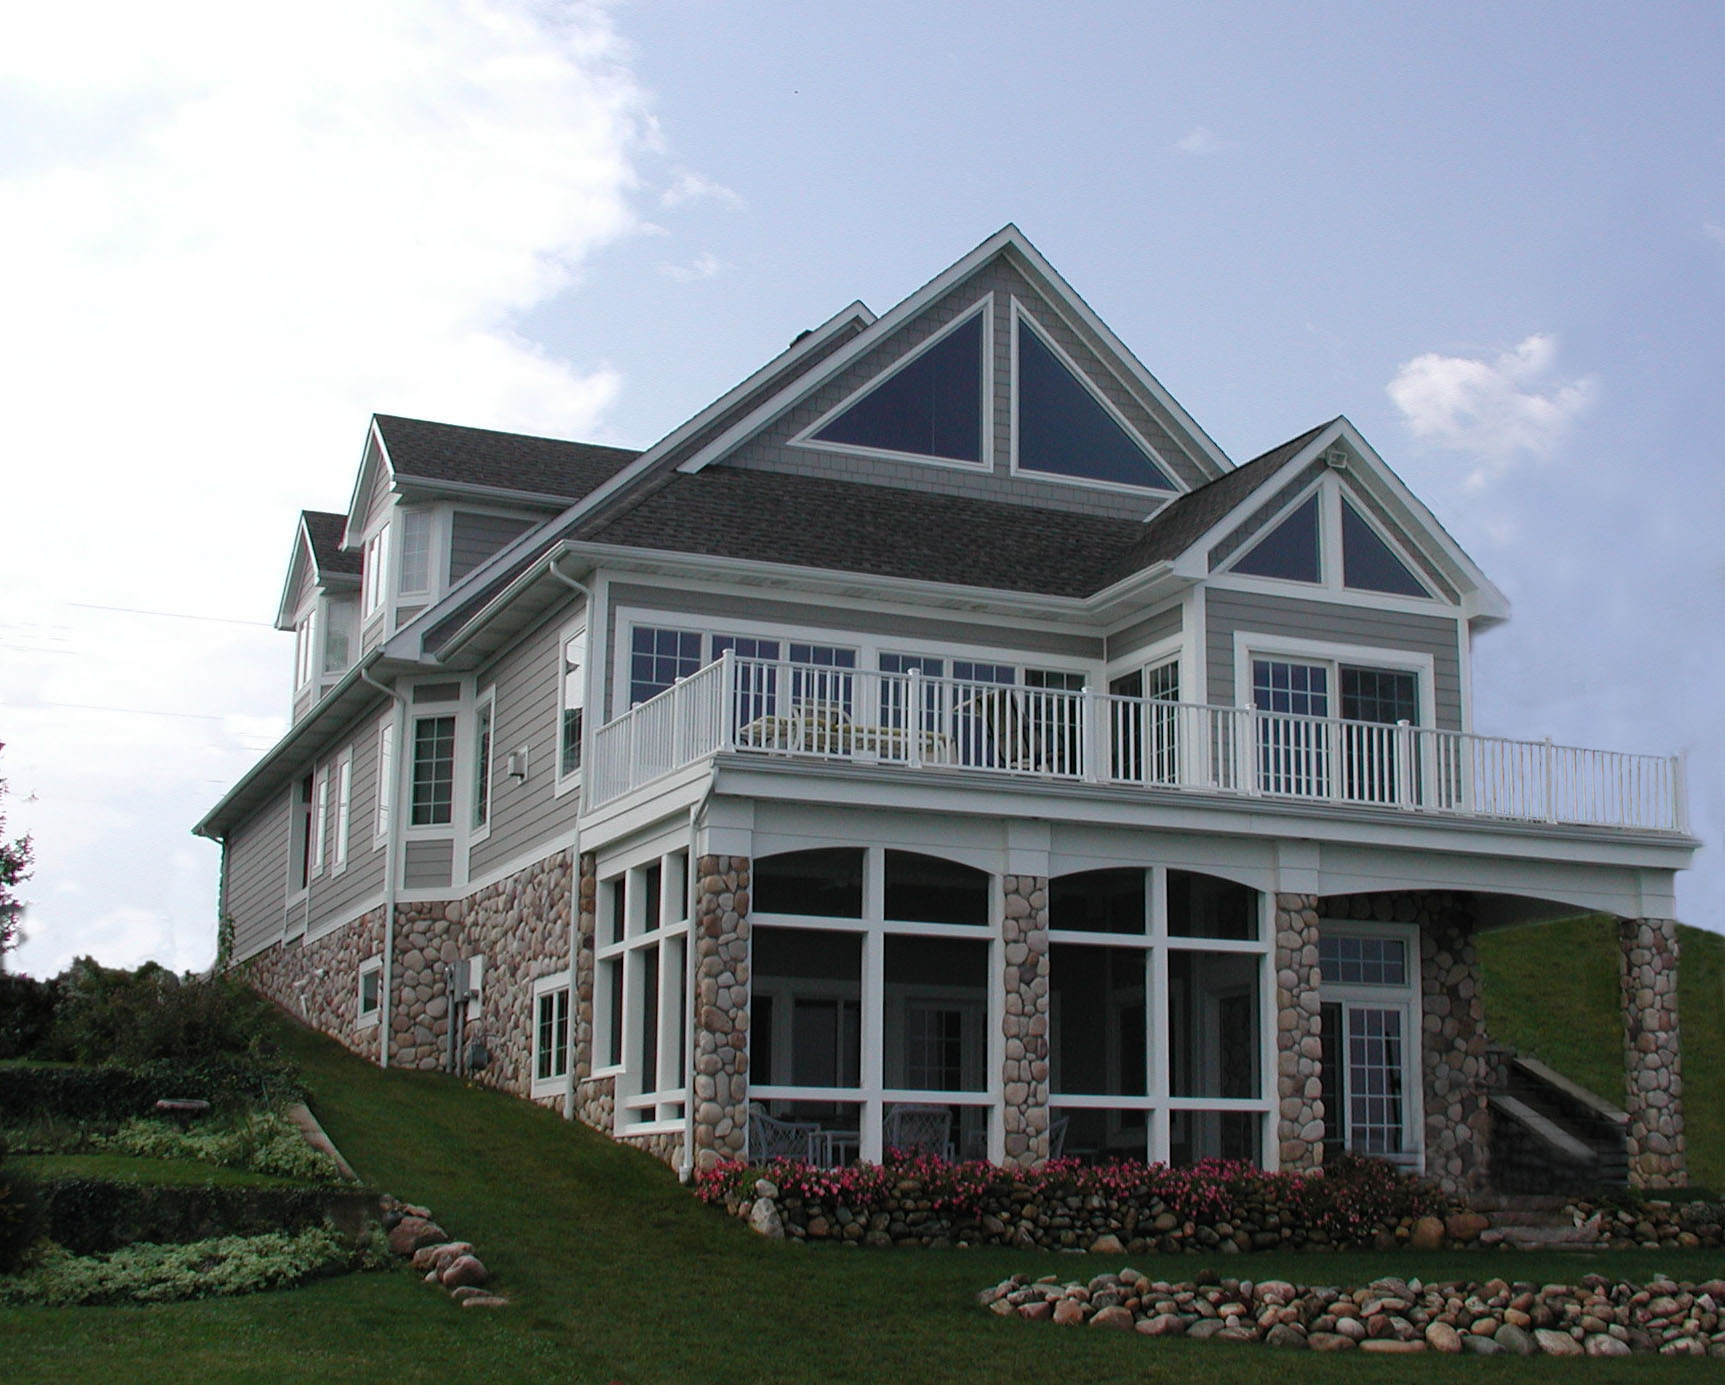 Vacation home design and build on northern Indiana lake